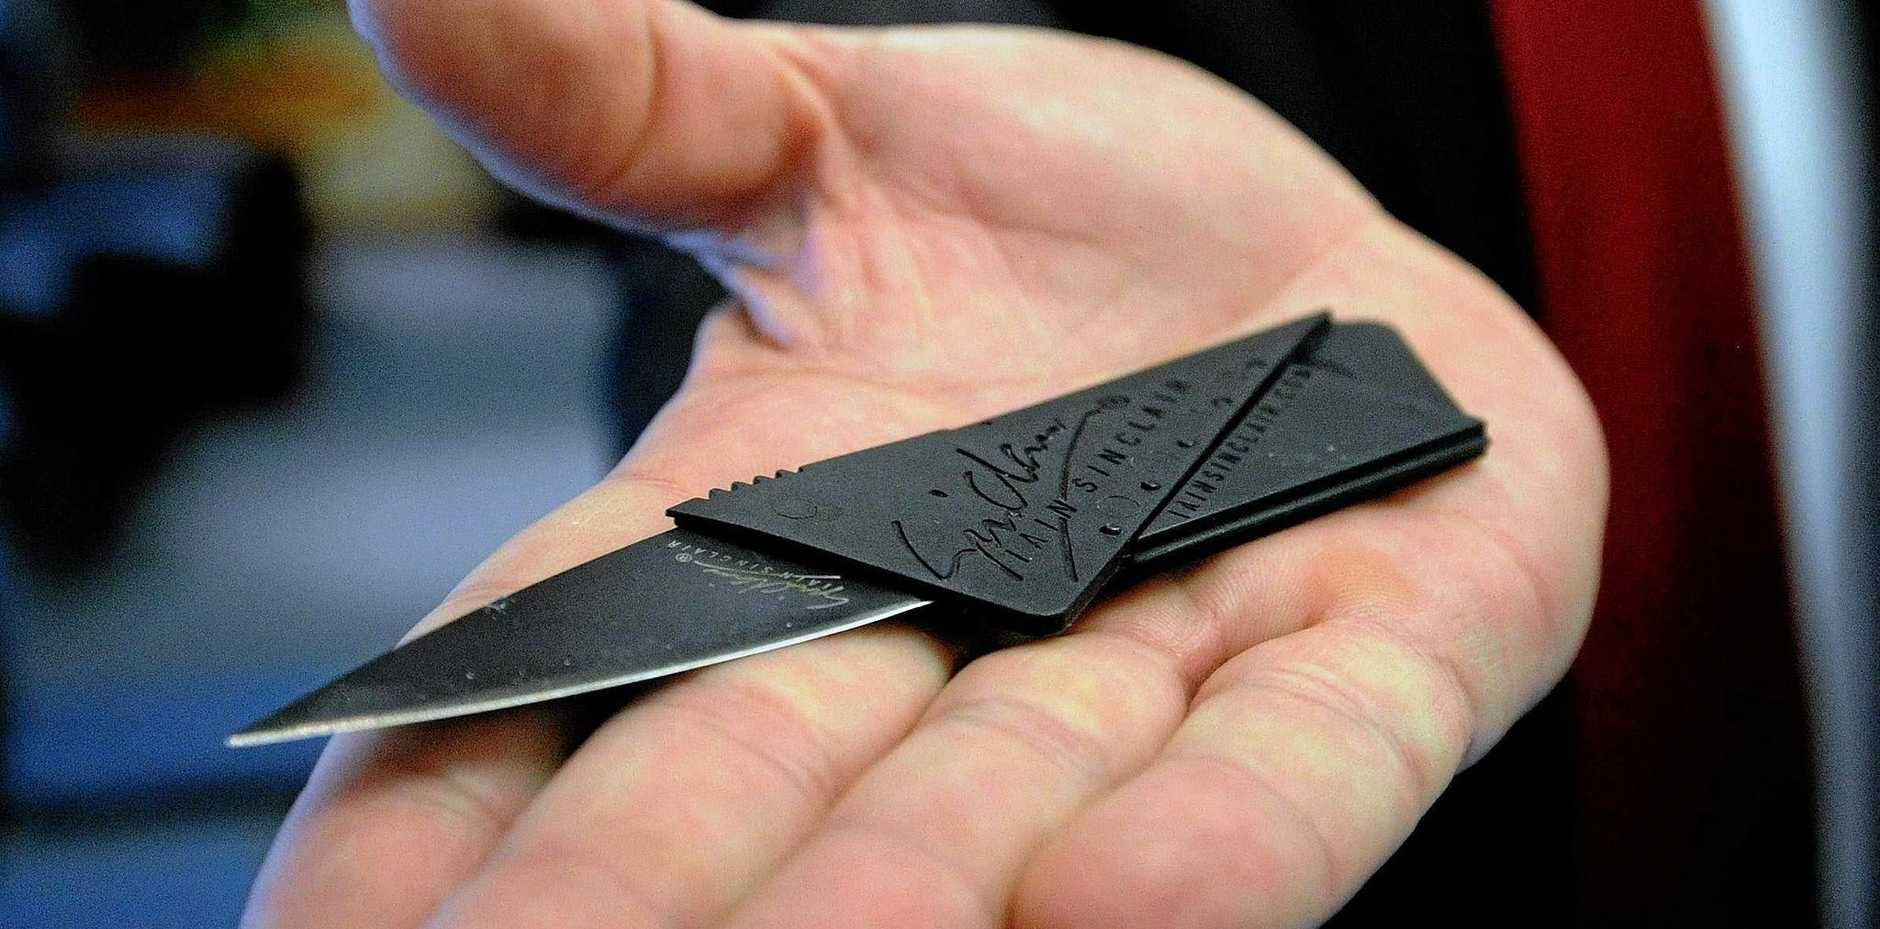 SURPRISE: Airport security staff uncovered a credit card knife in a woman's wallet at Gladstone Airport security (file photo).